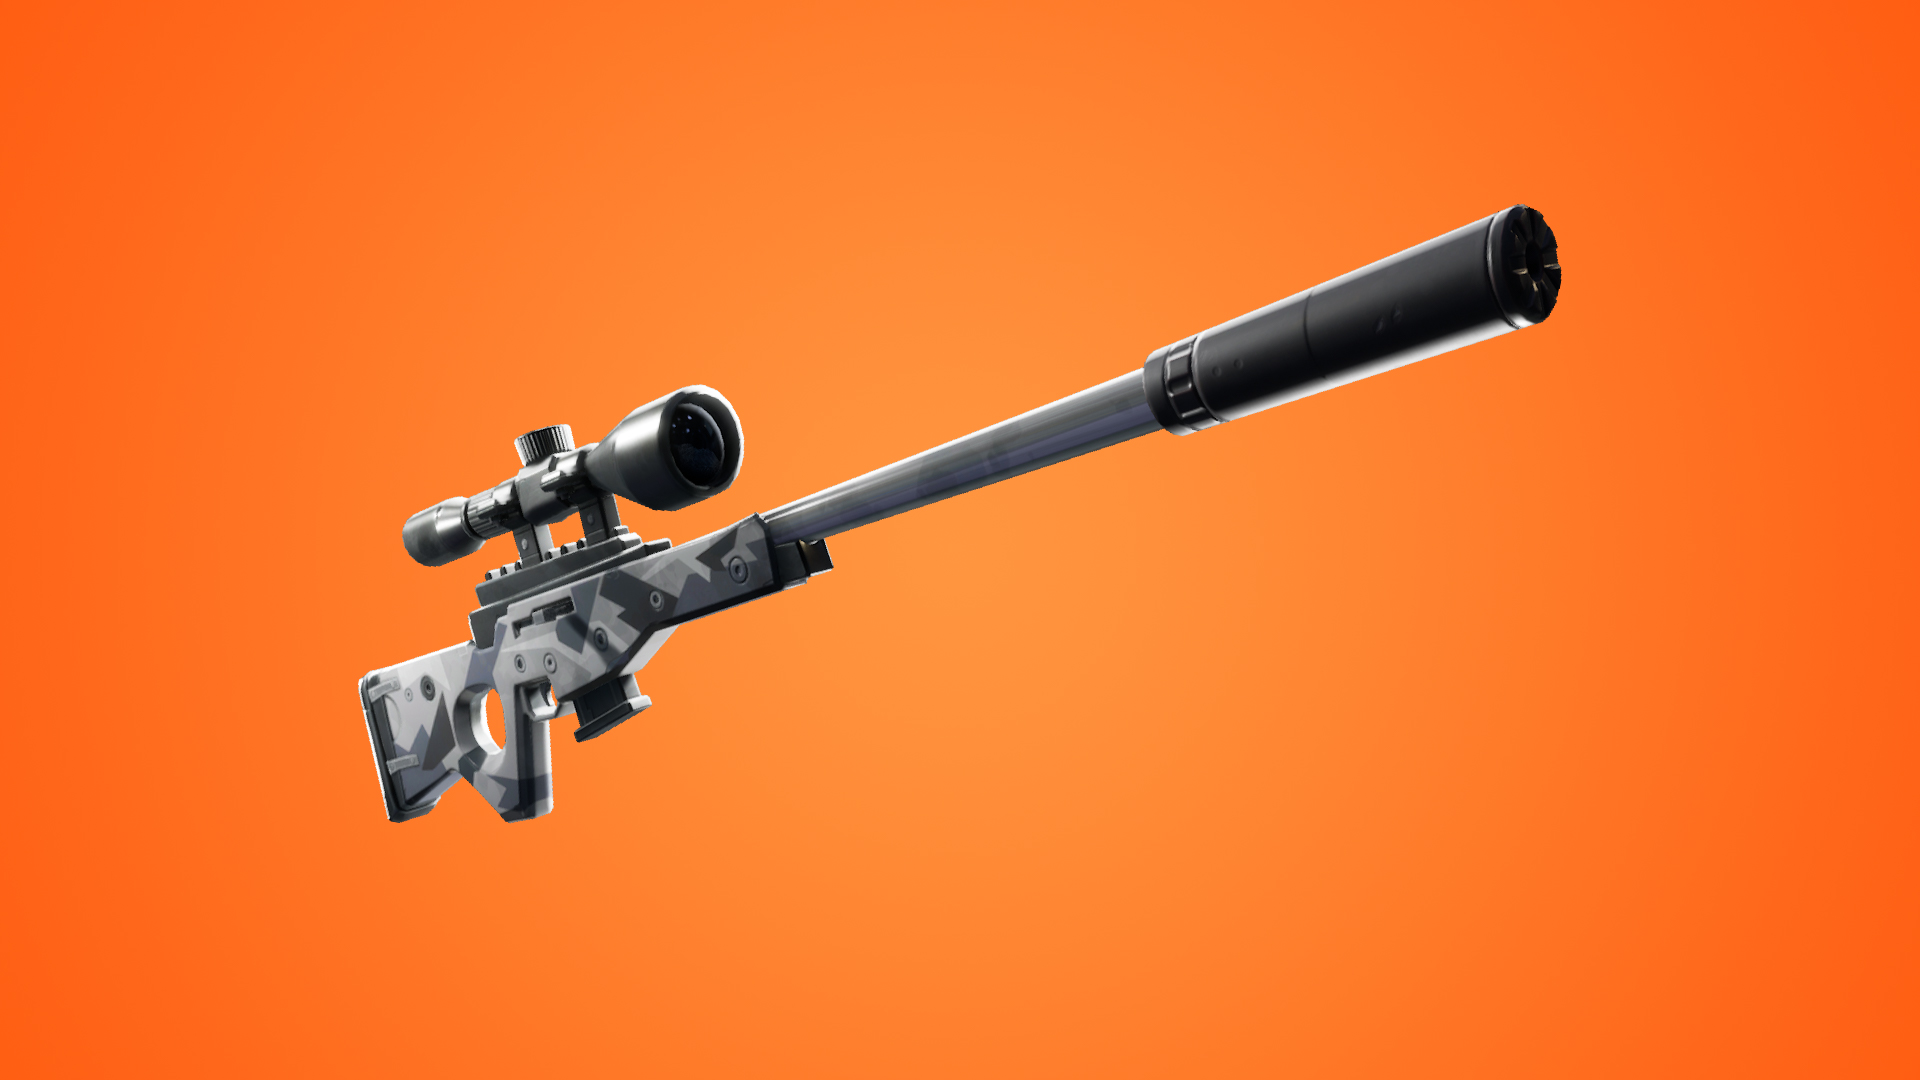 Fortnite S Bolt Action Sniper Rifle Is Back In V9 40 Replacing Its Suppressed Version Dot Esports